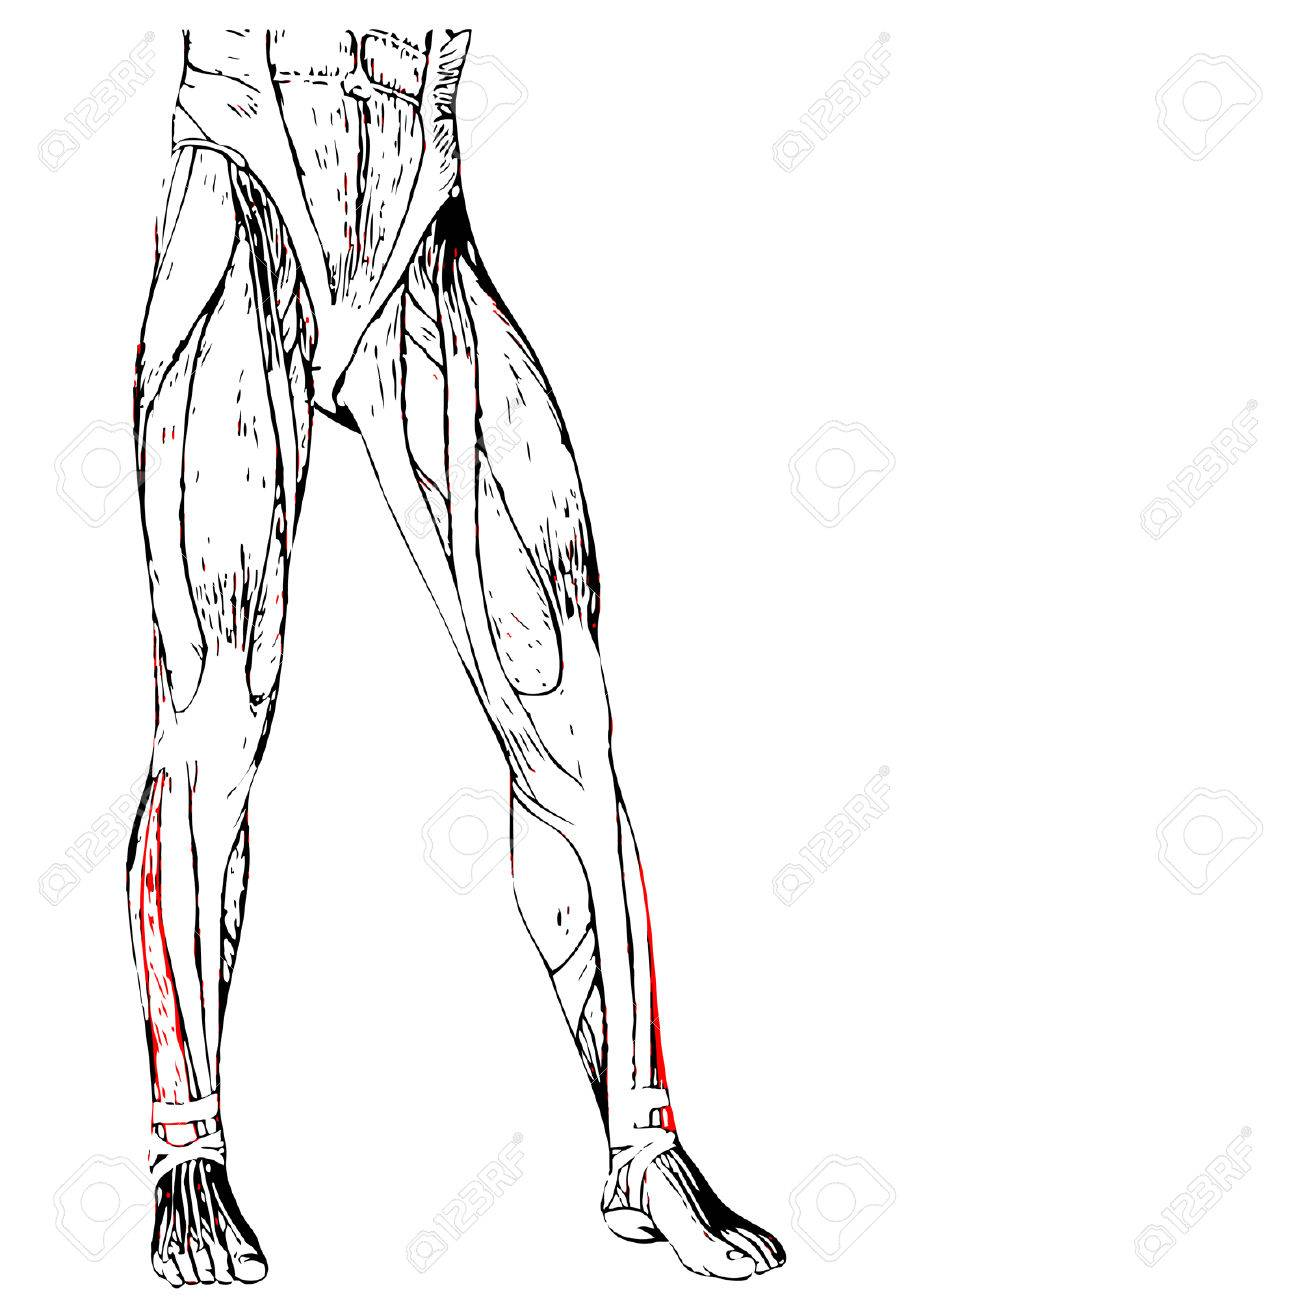 Leg Muscle Drawing At Getdrawings